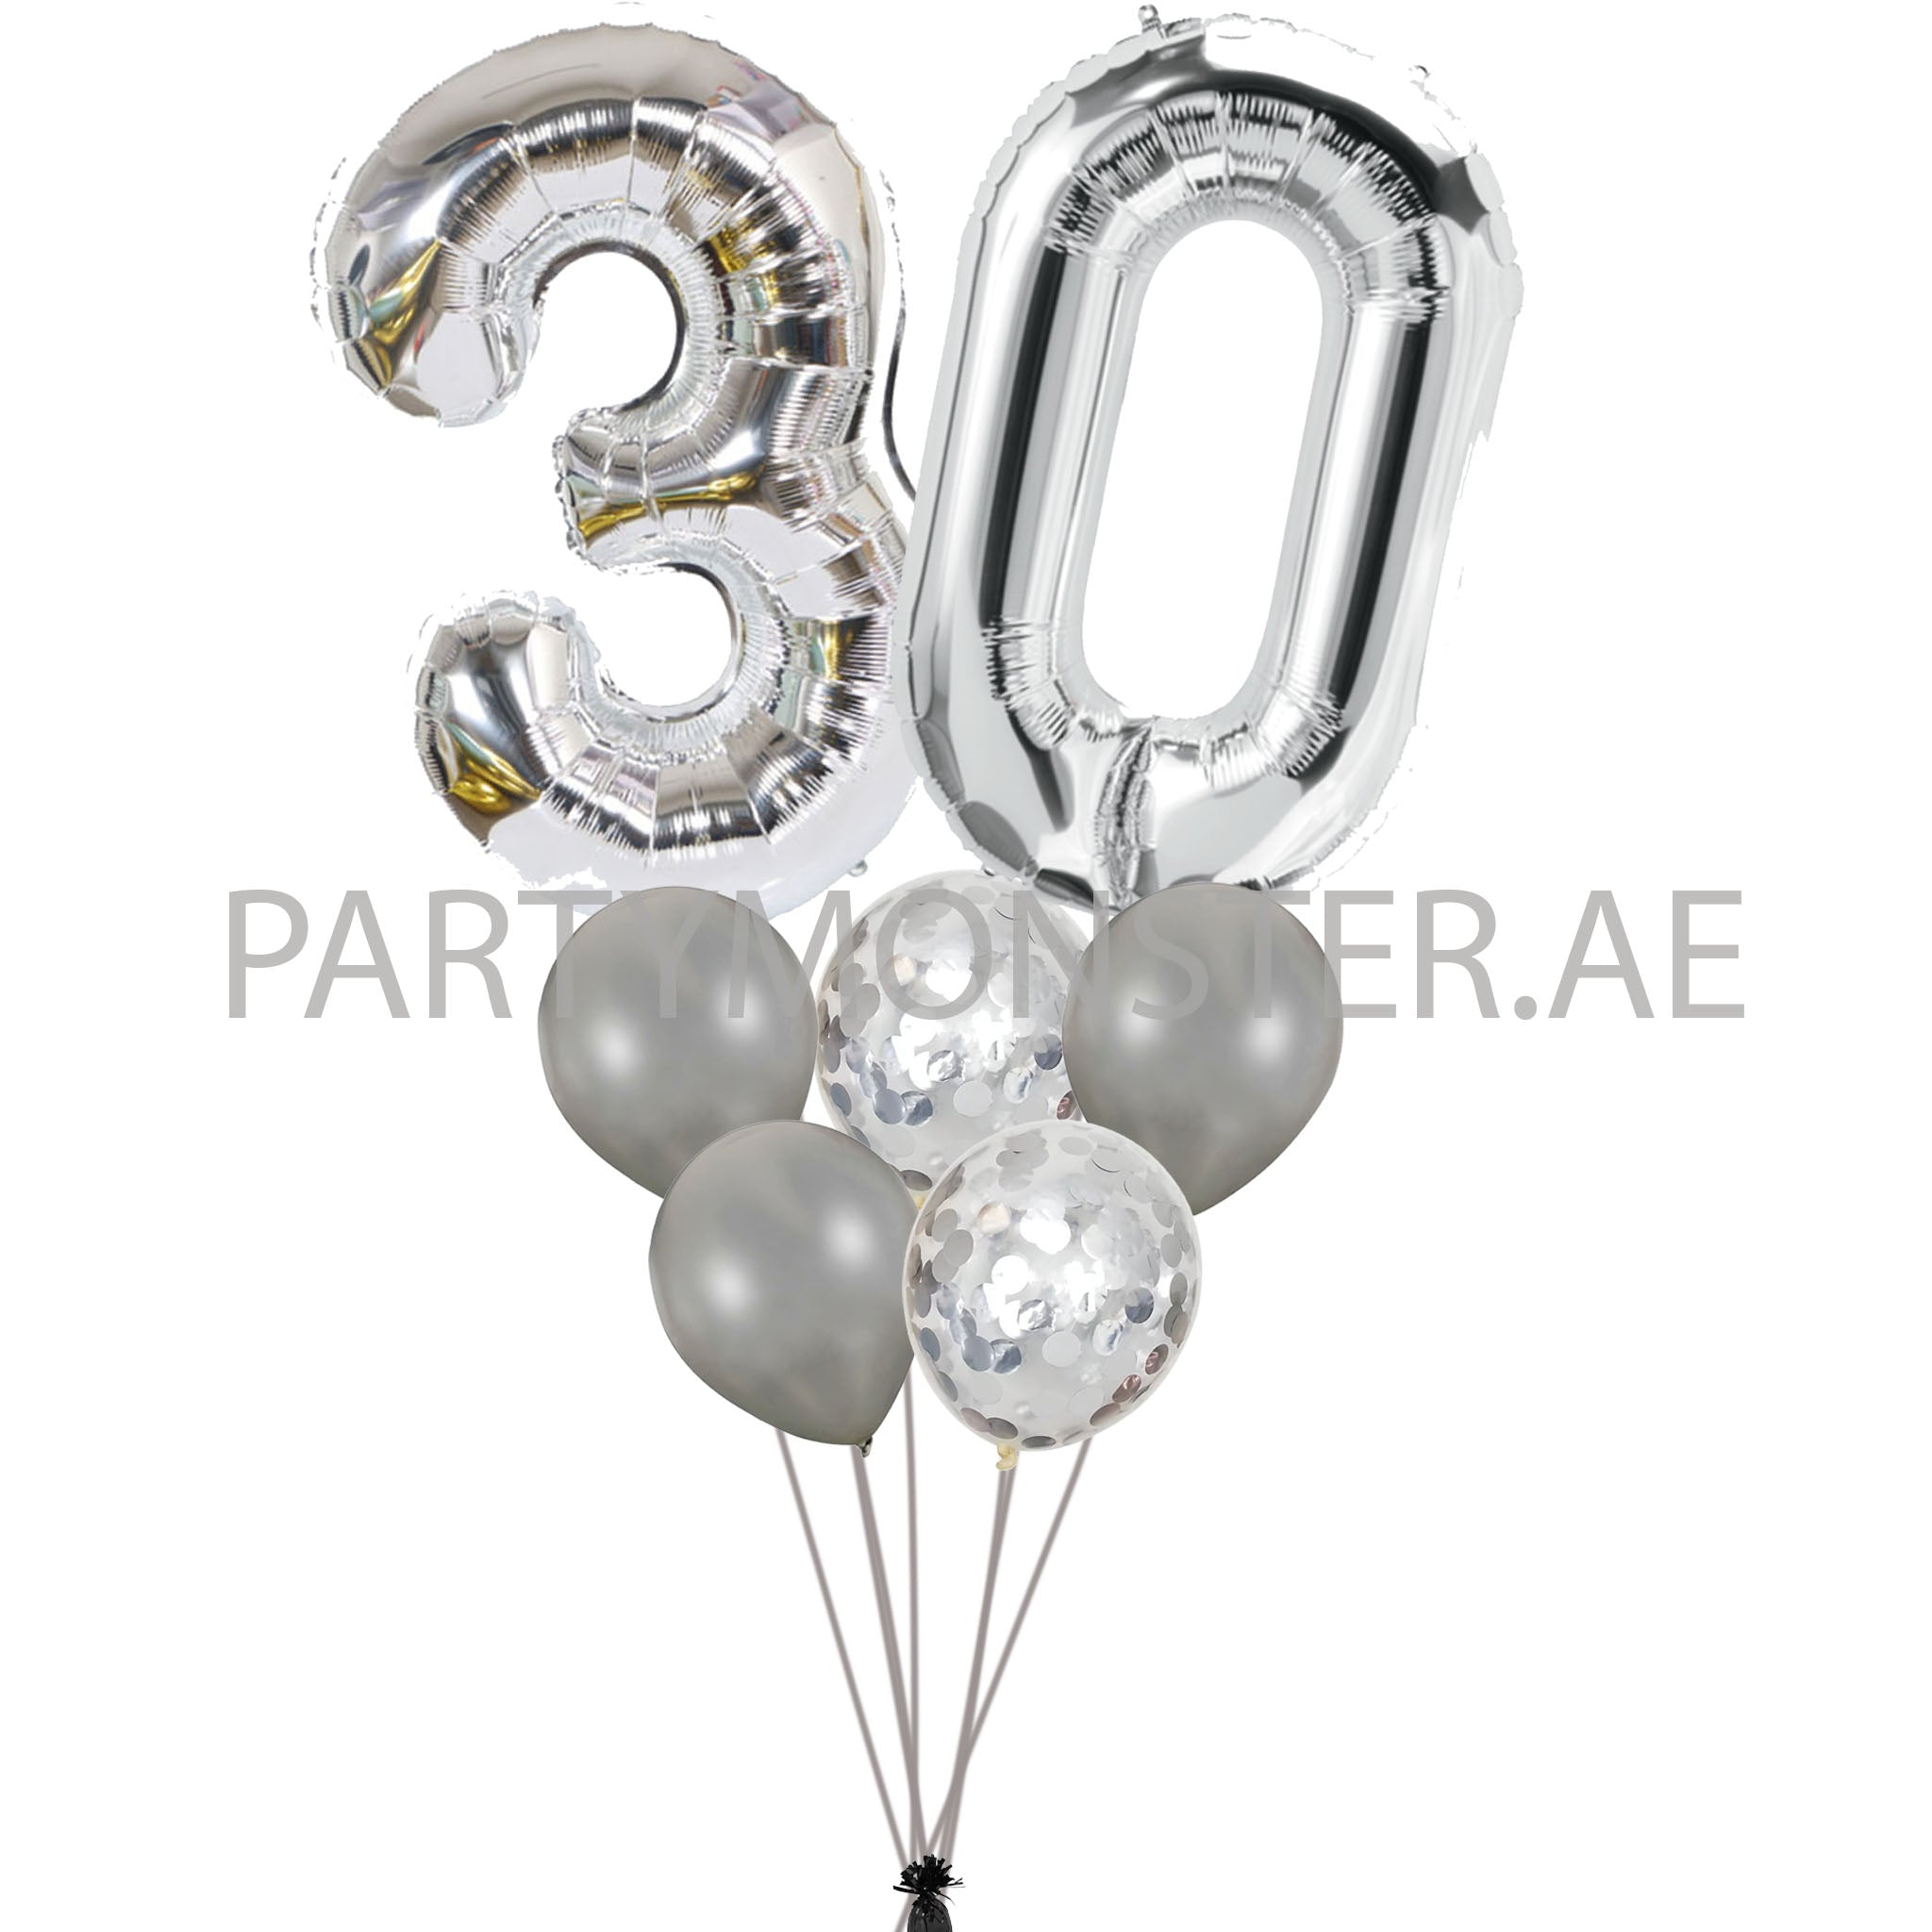 Any silver number balloons bouquet - PartyMonster.ae